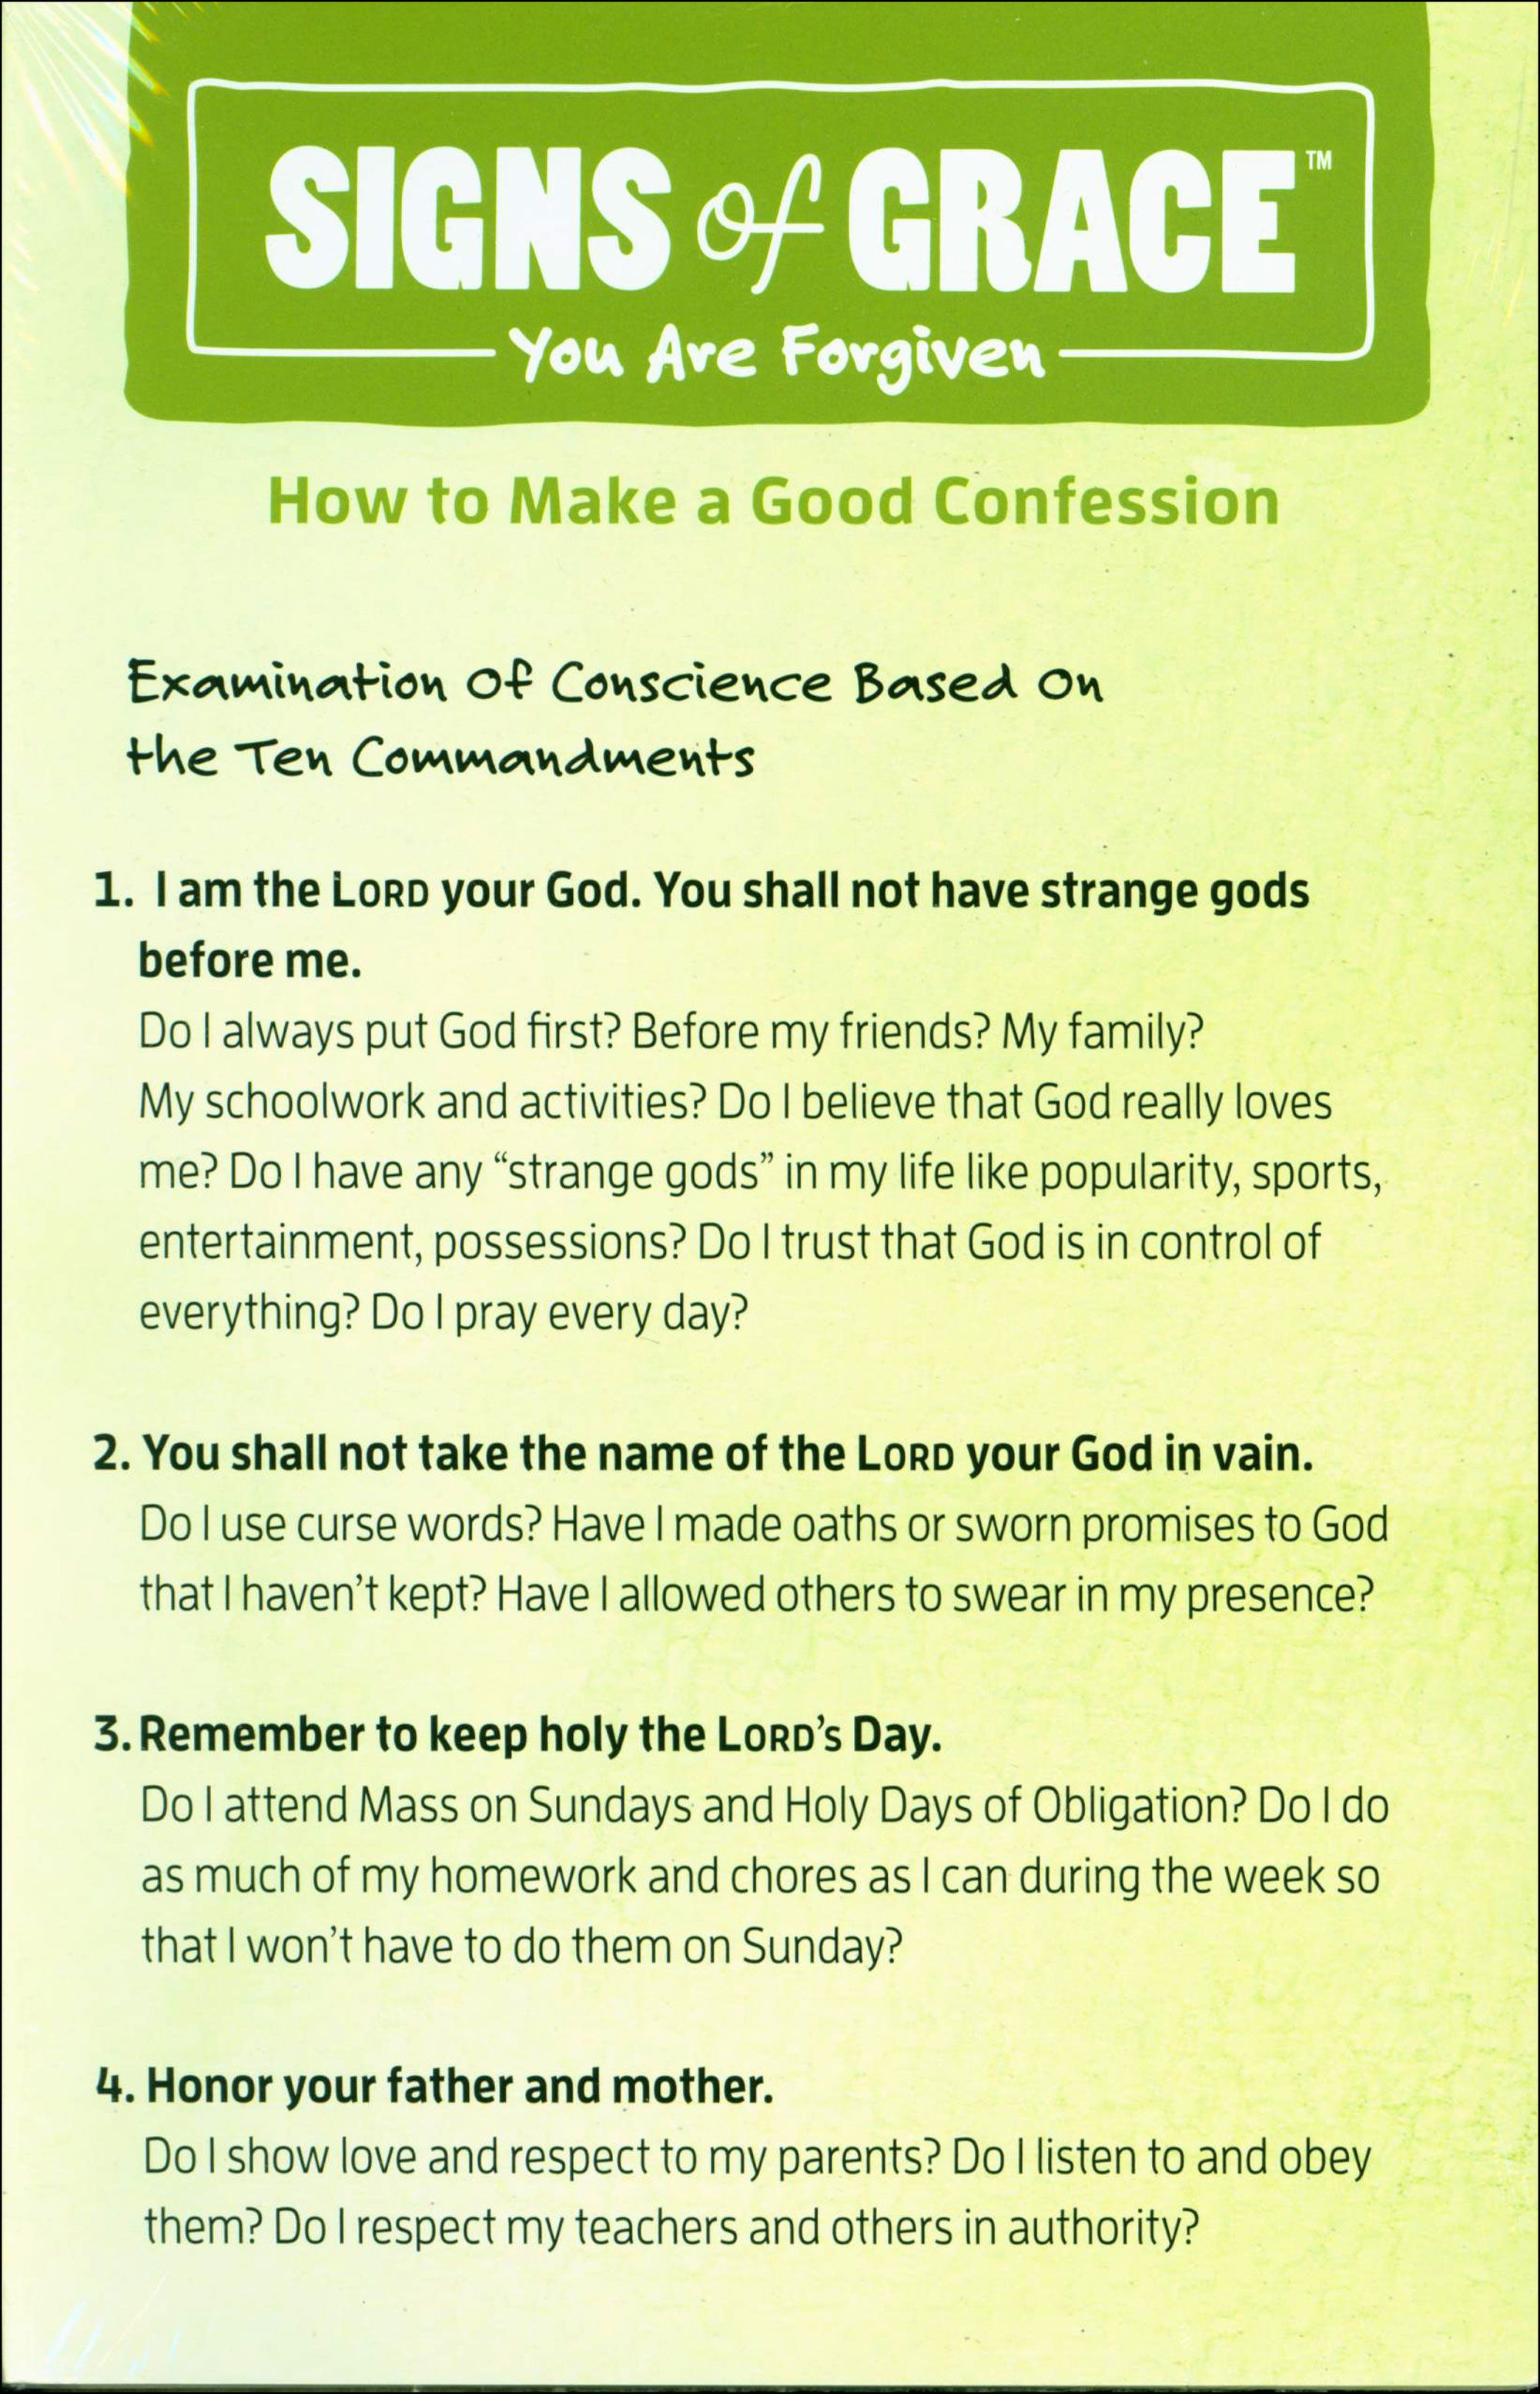 Signs Of Grace First Reconciliation Confession Card Examination Of Conscience Catholic Reconciliation Examination Of Conscience